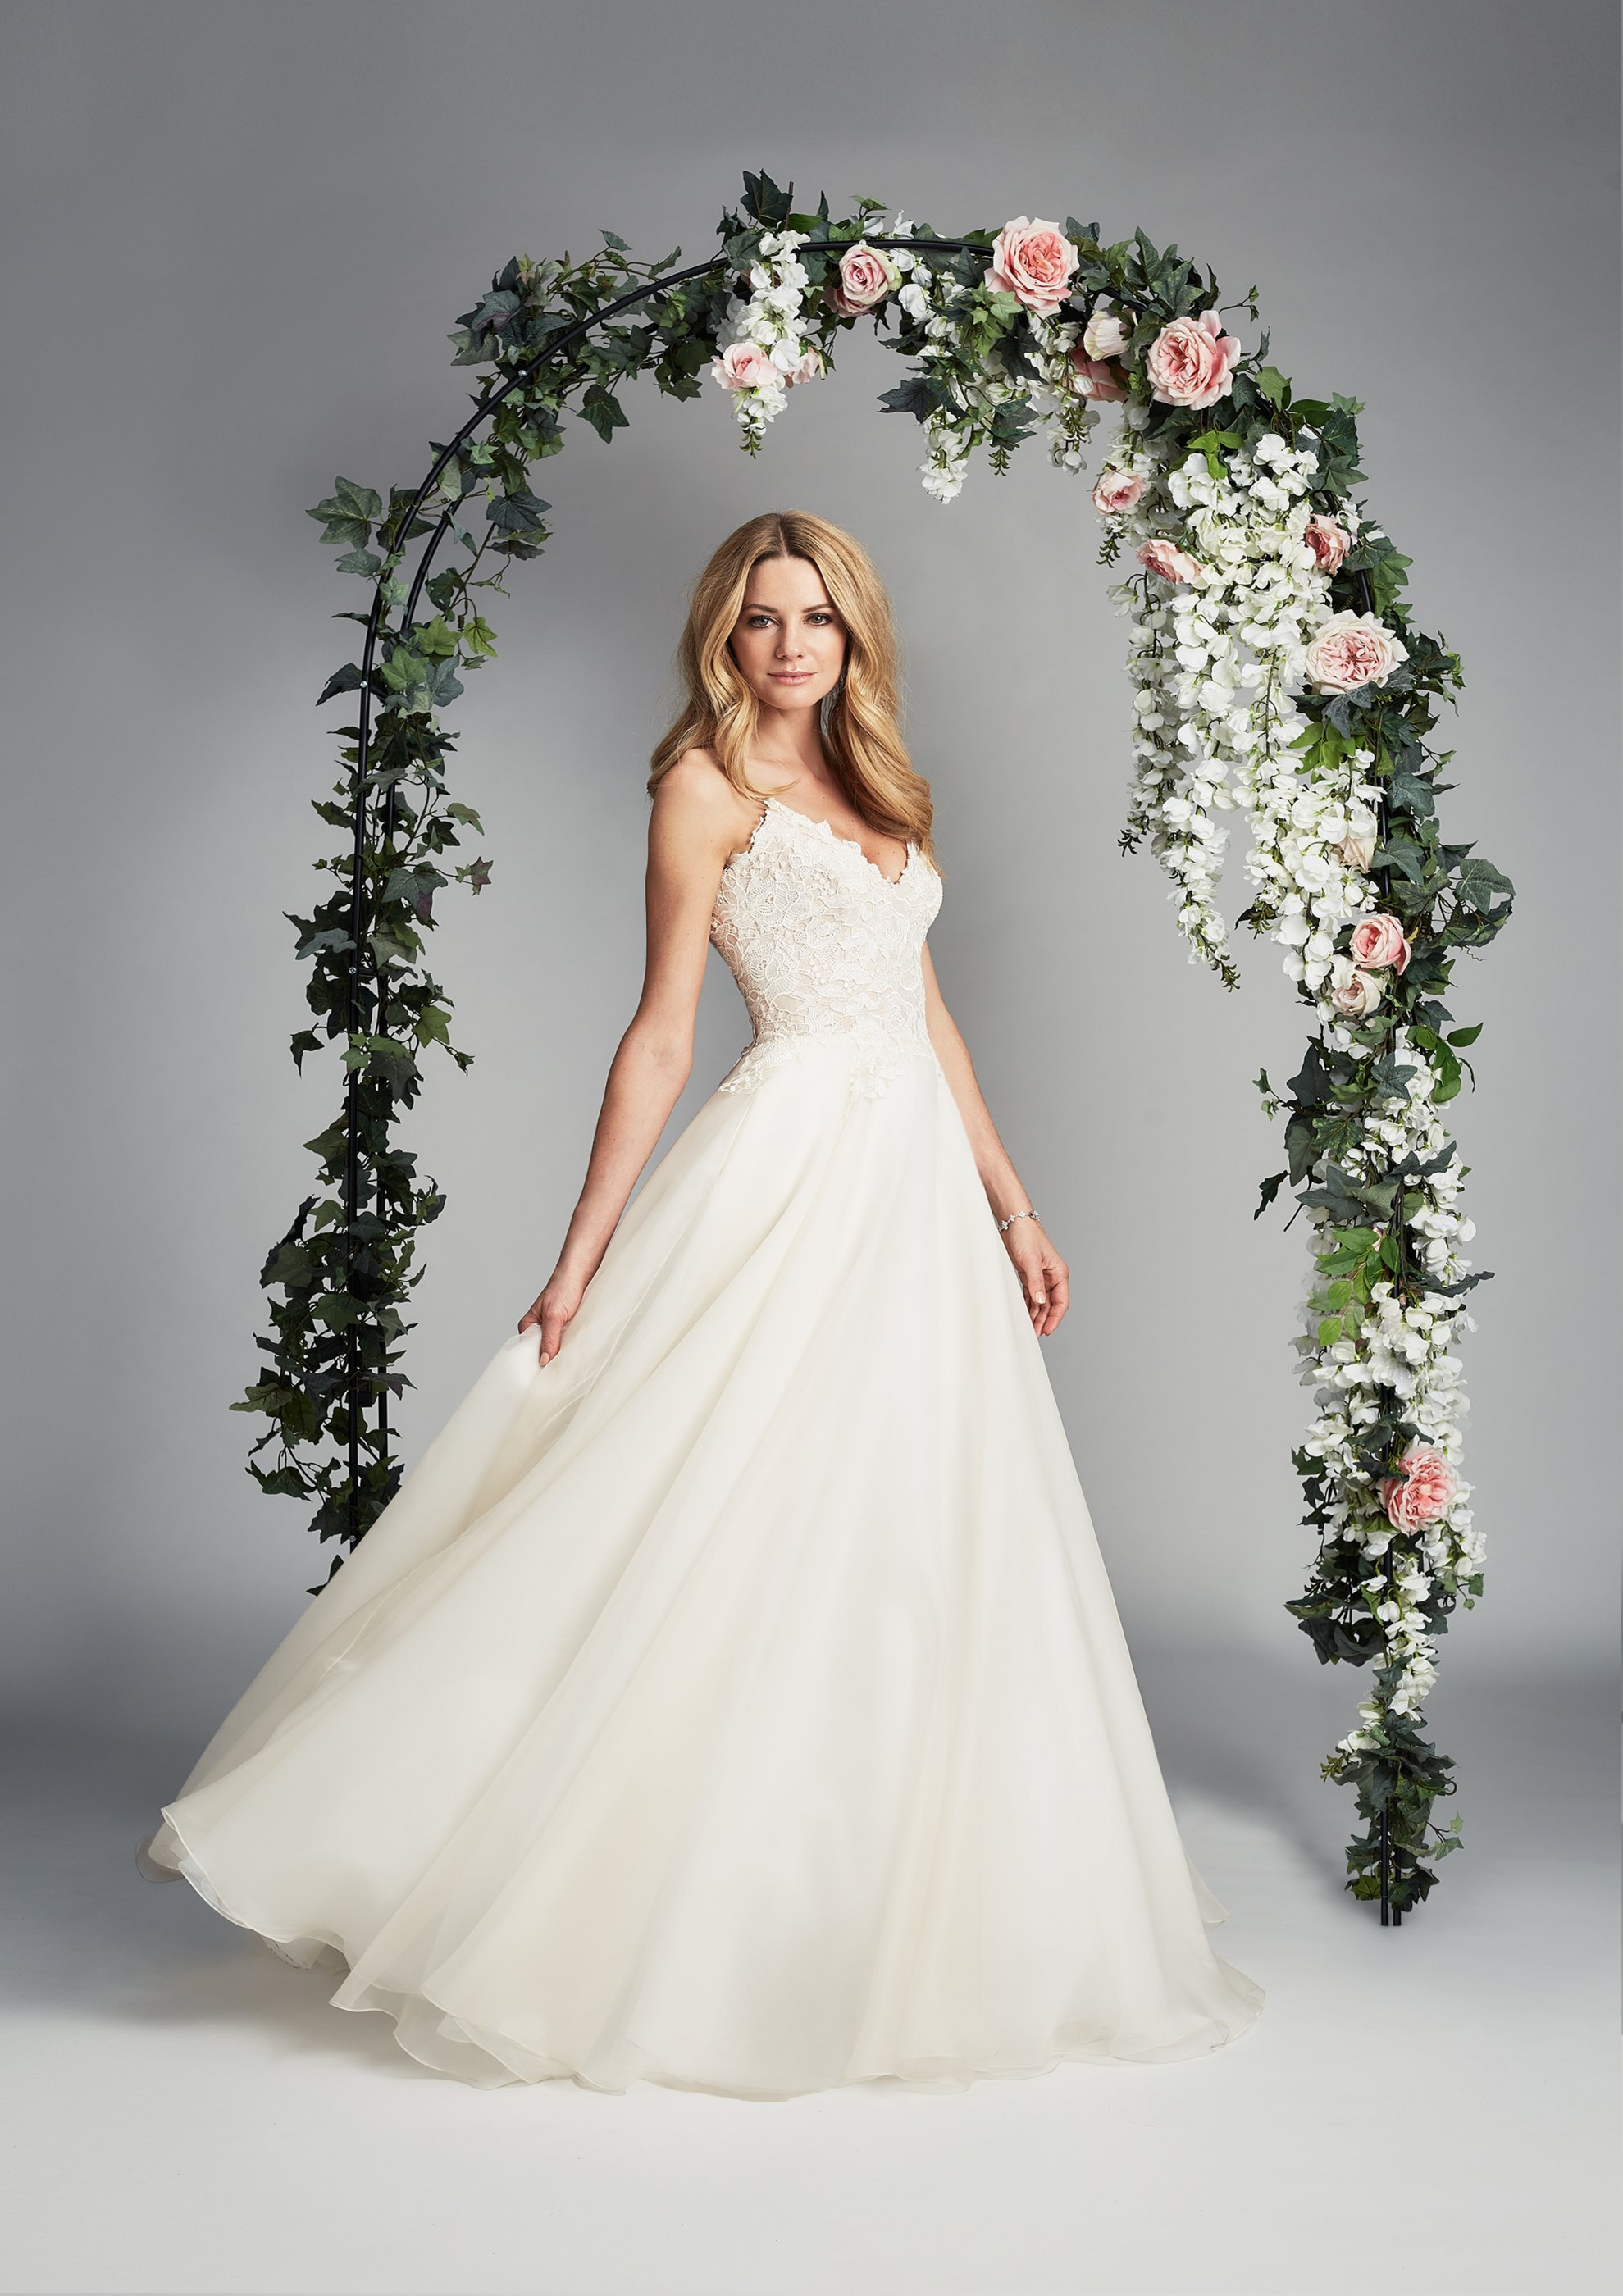 62ab59a39dc9 Tertia by Caroline Castigliano - How to find the perfect wedding dress -  advice from couture